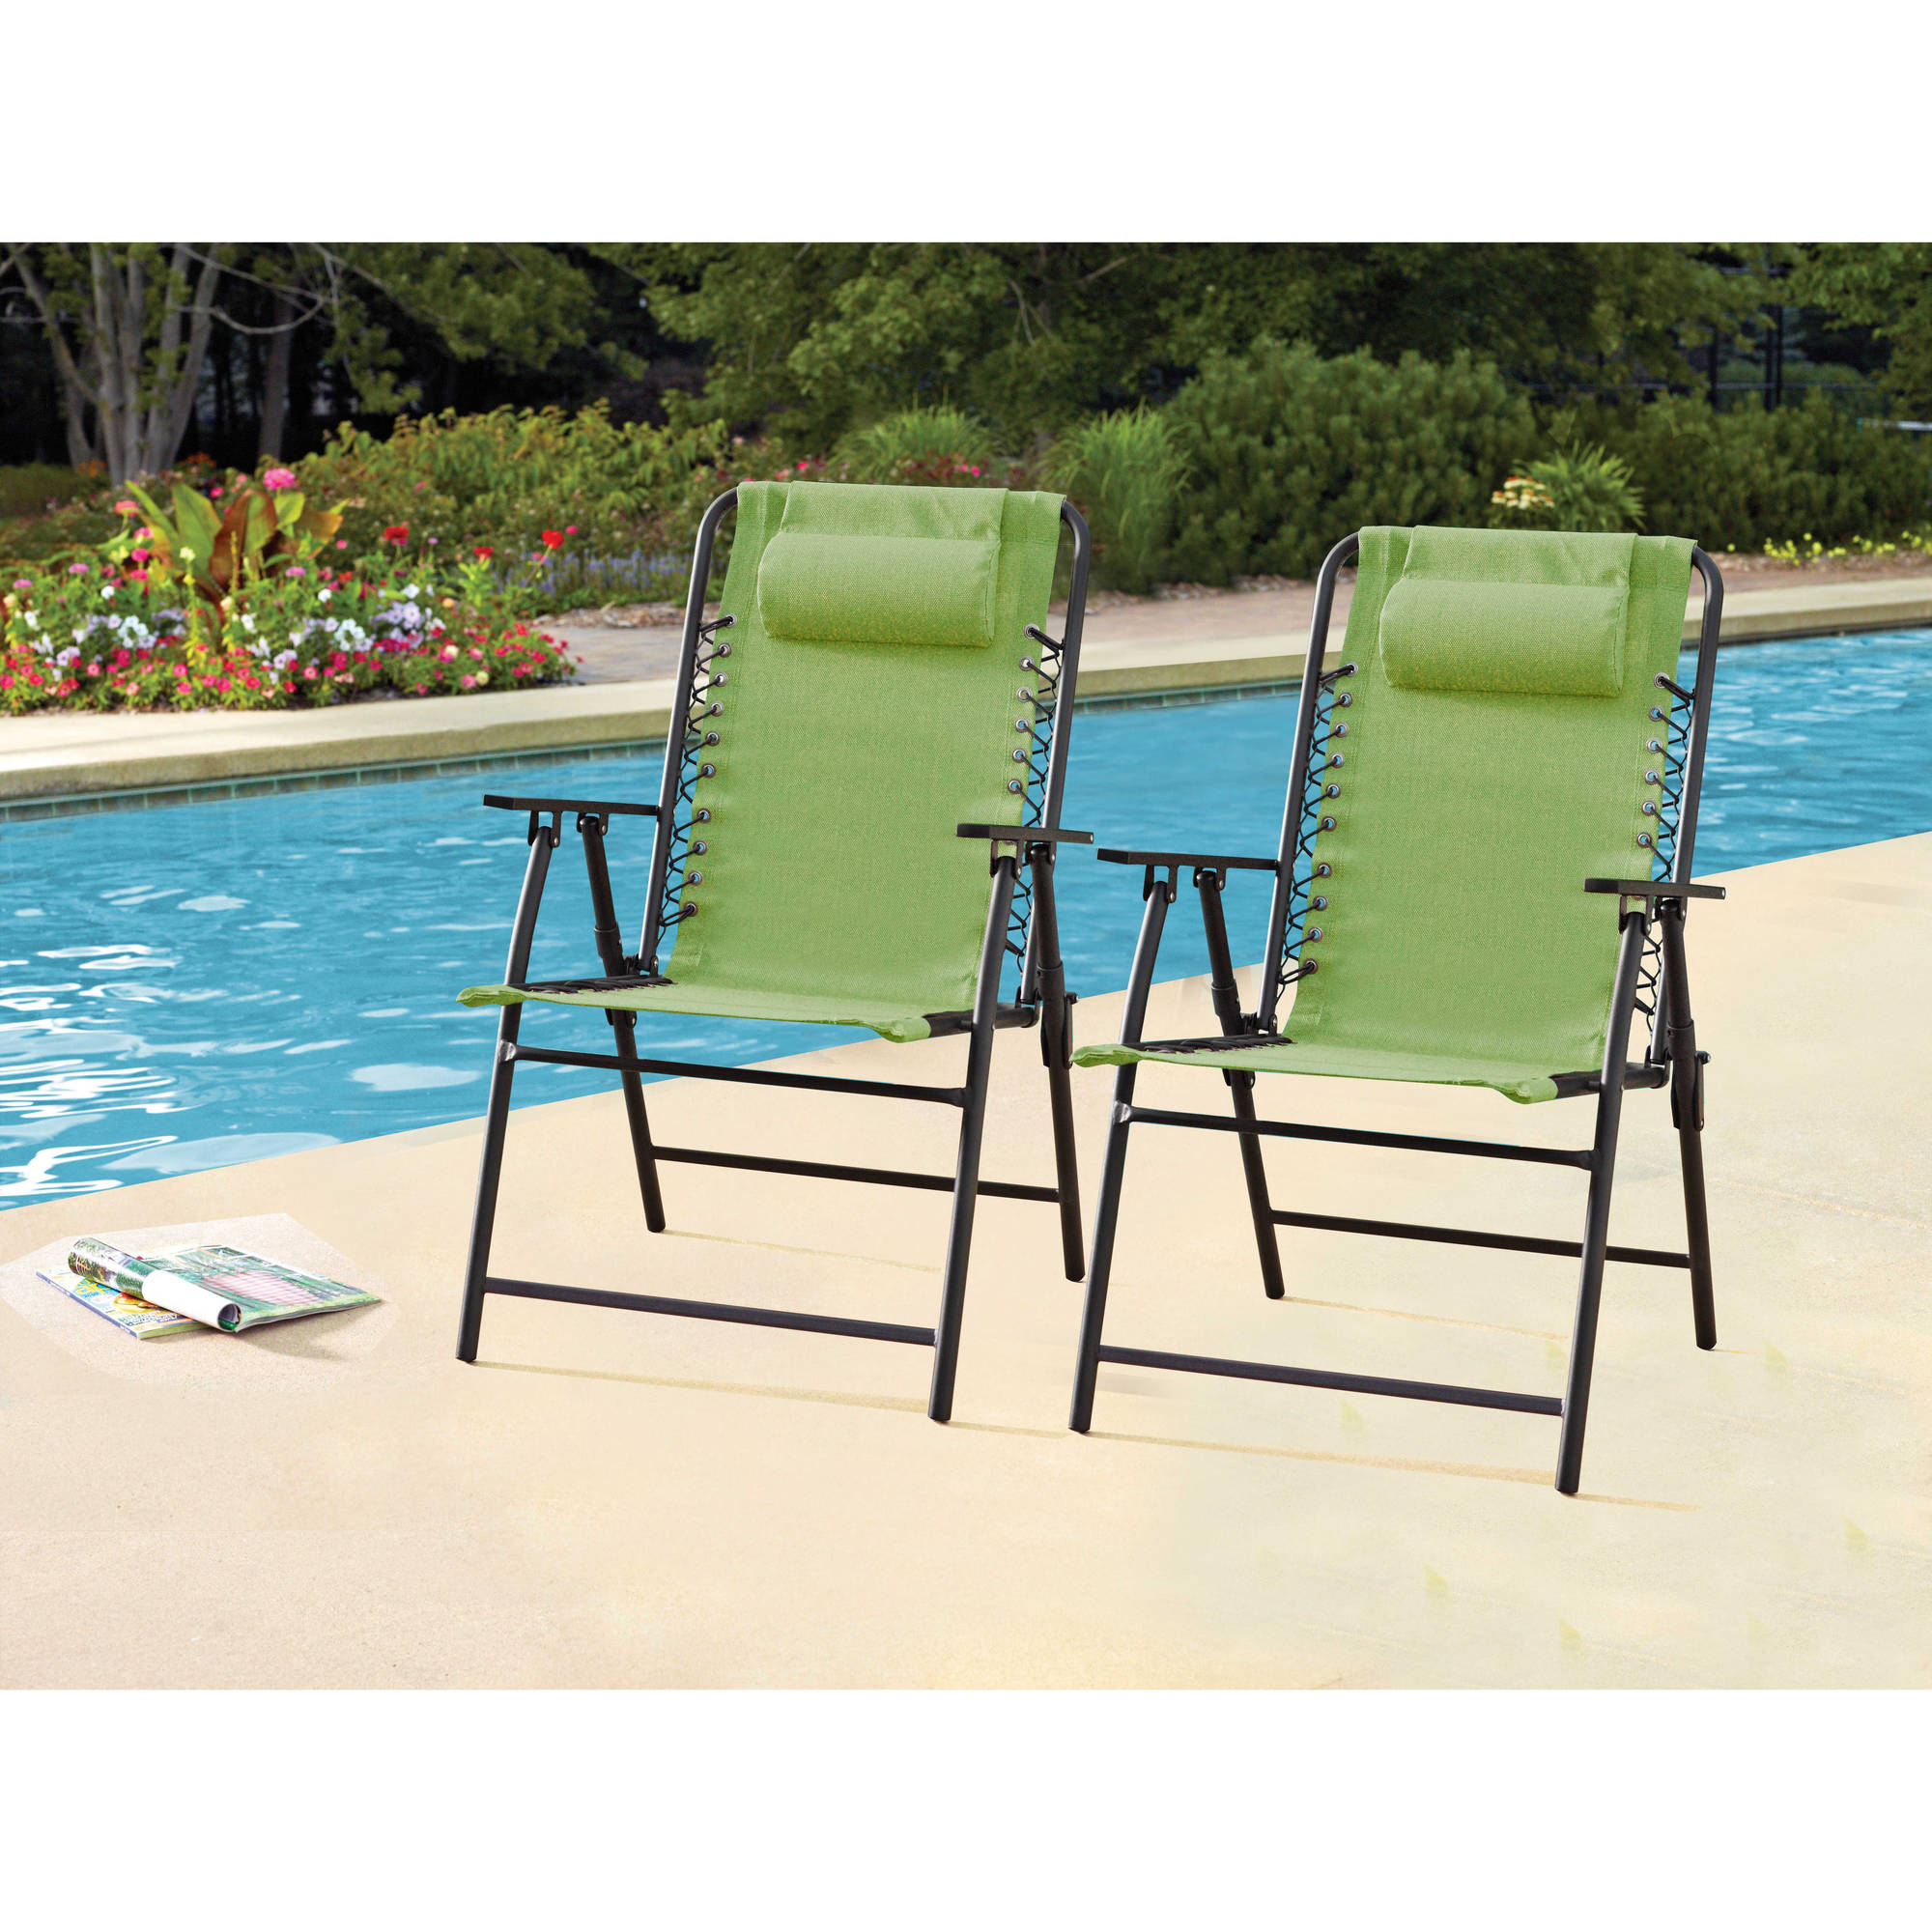 Mainstays Heritage Park Stacking Sling Chair Navy Blue Walmart